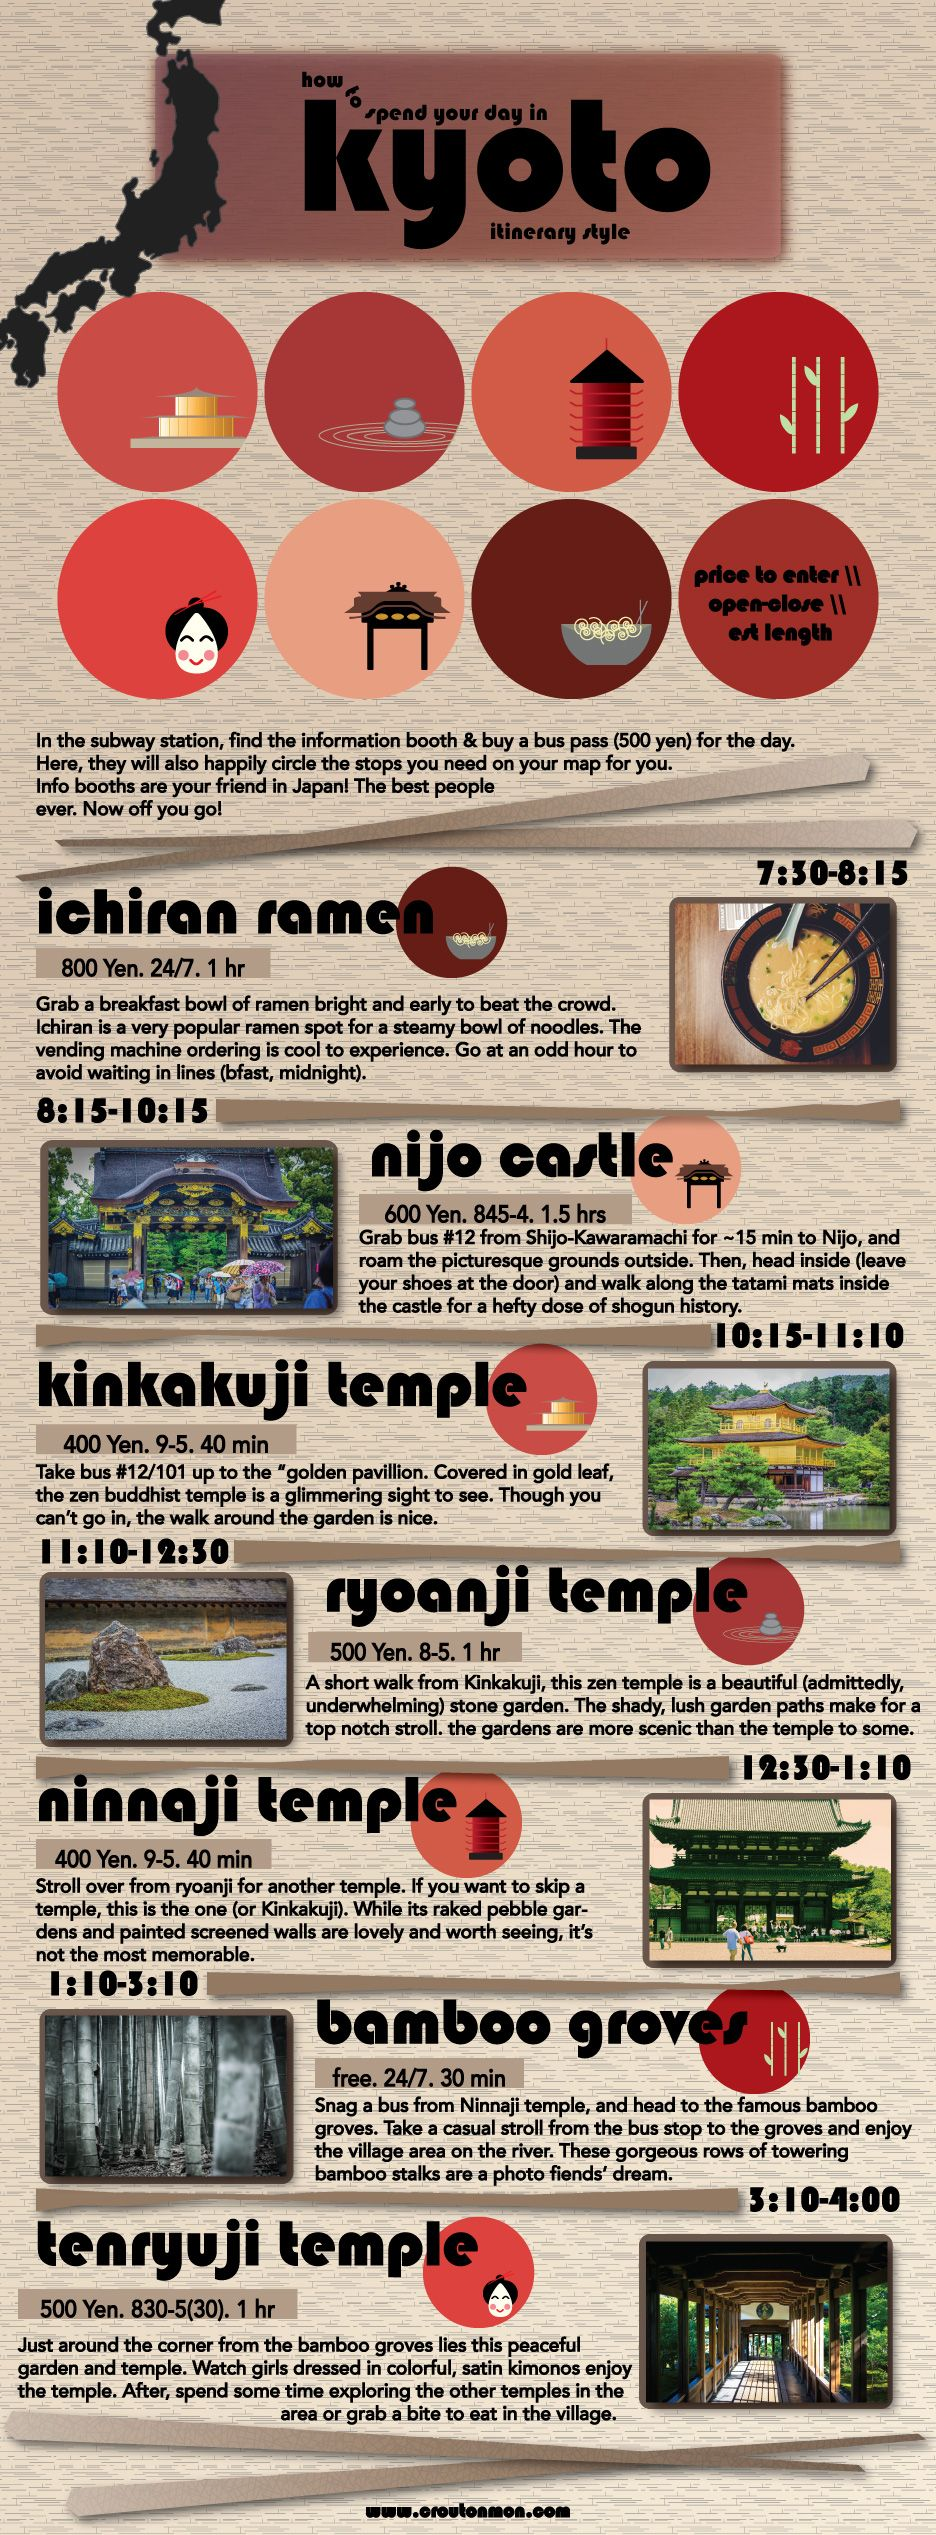 Kyoto Itinerary Infographic What To Do In Kyoto Japan An Infographic From Croutonmon Kyoto Itinerary Japan Travel Japan Holidays